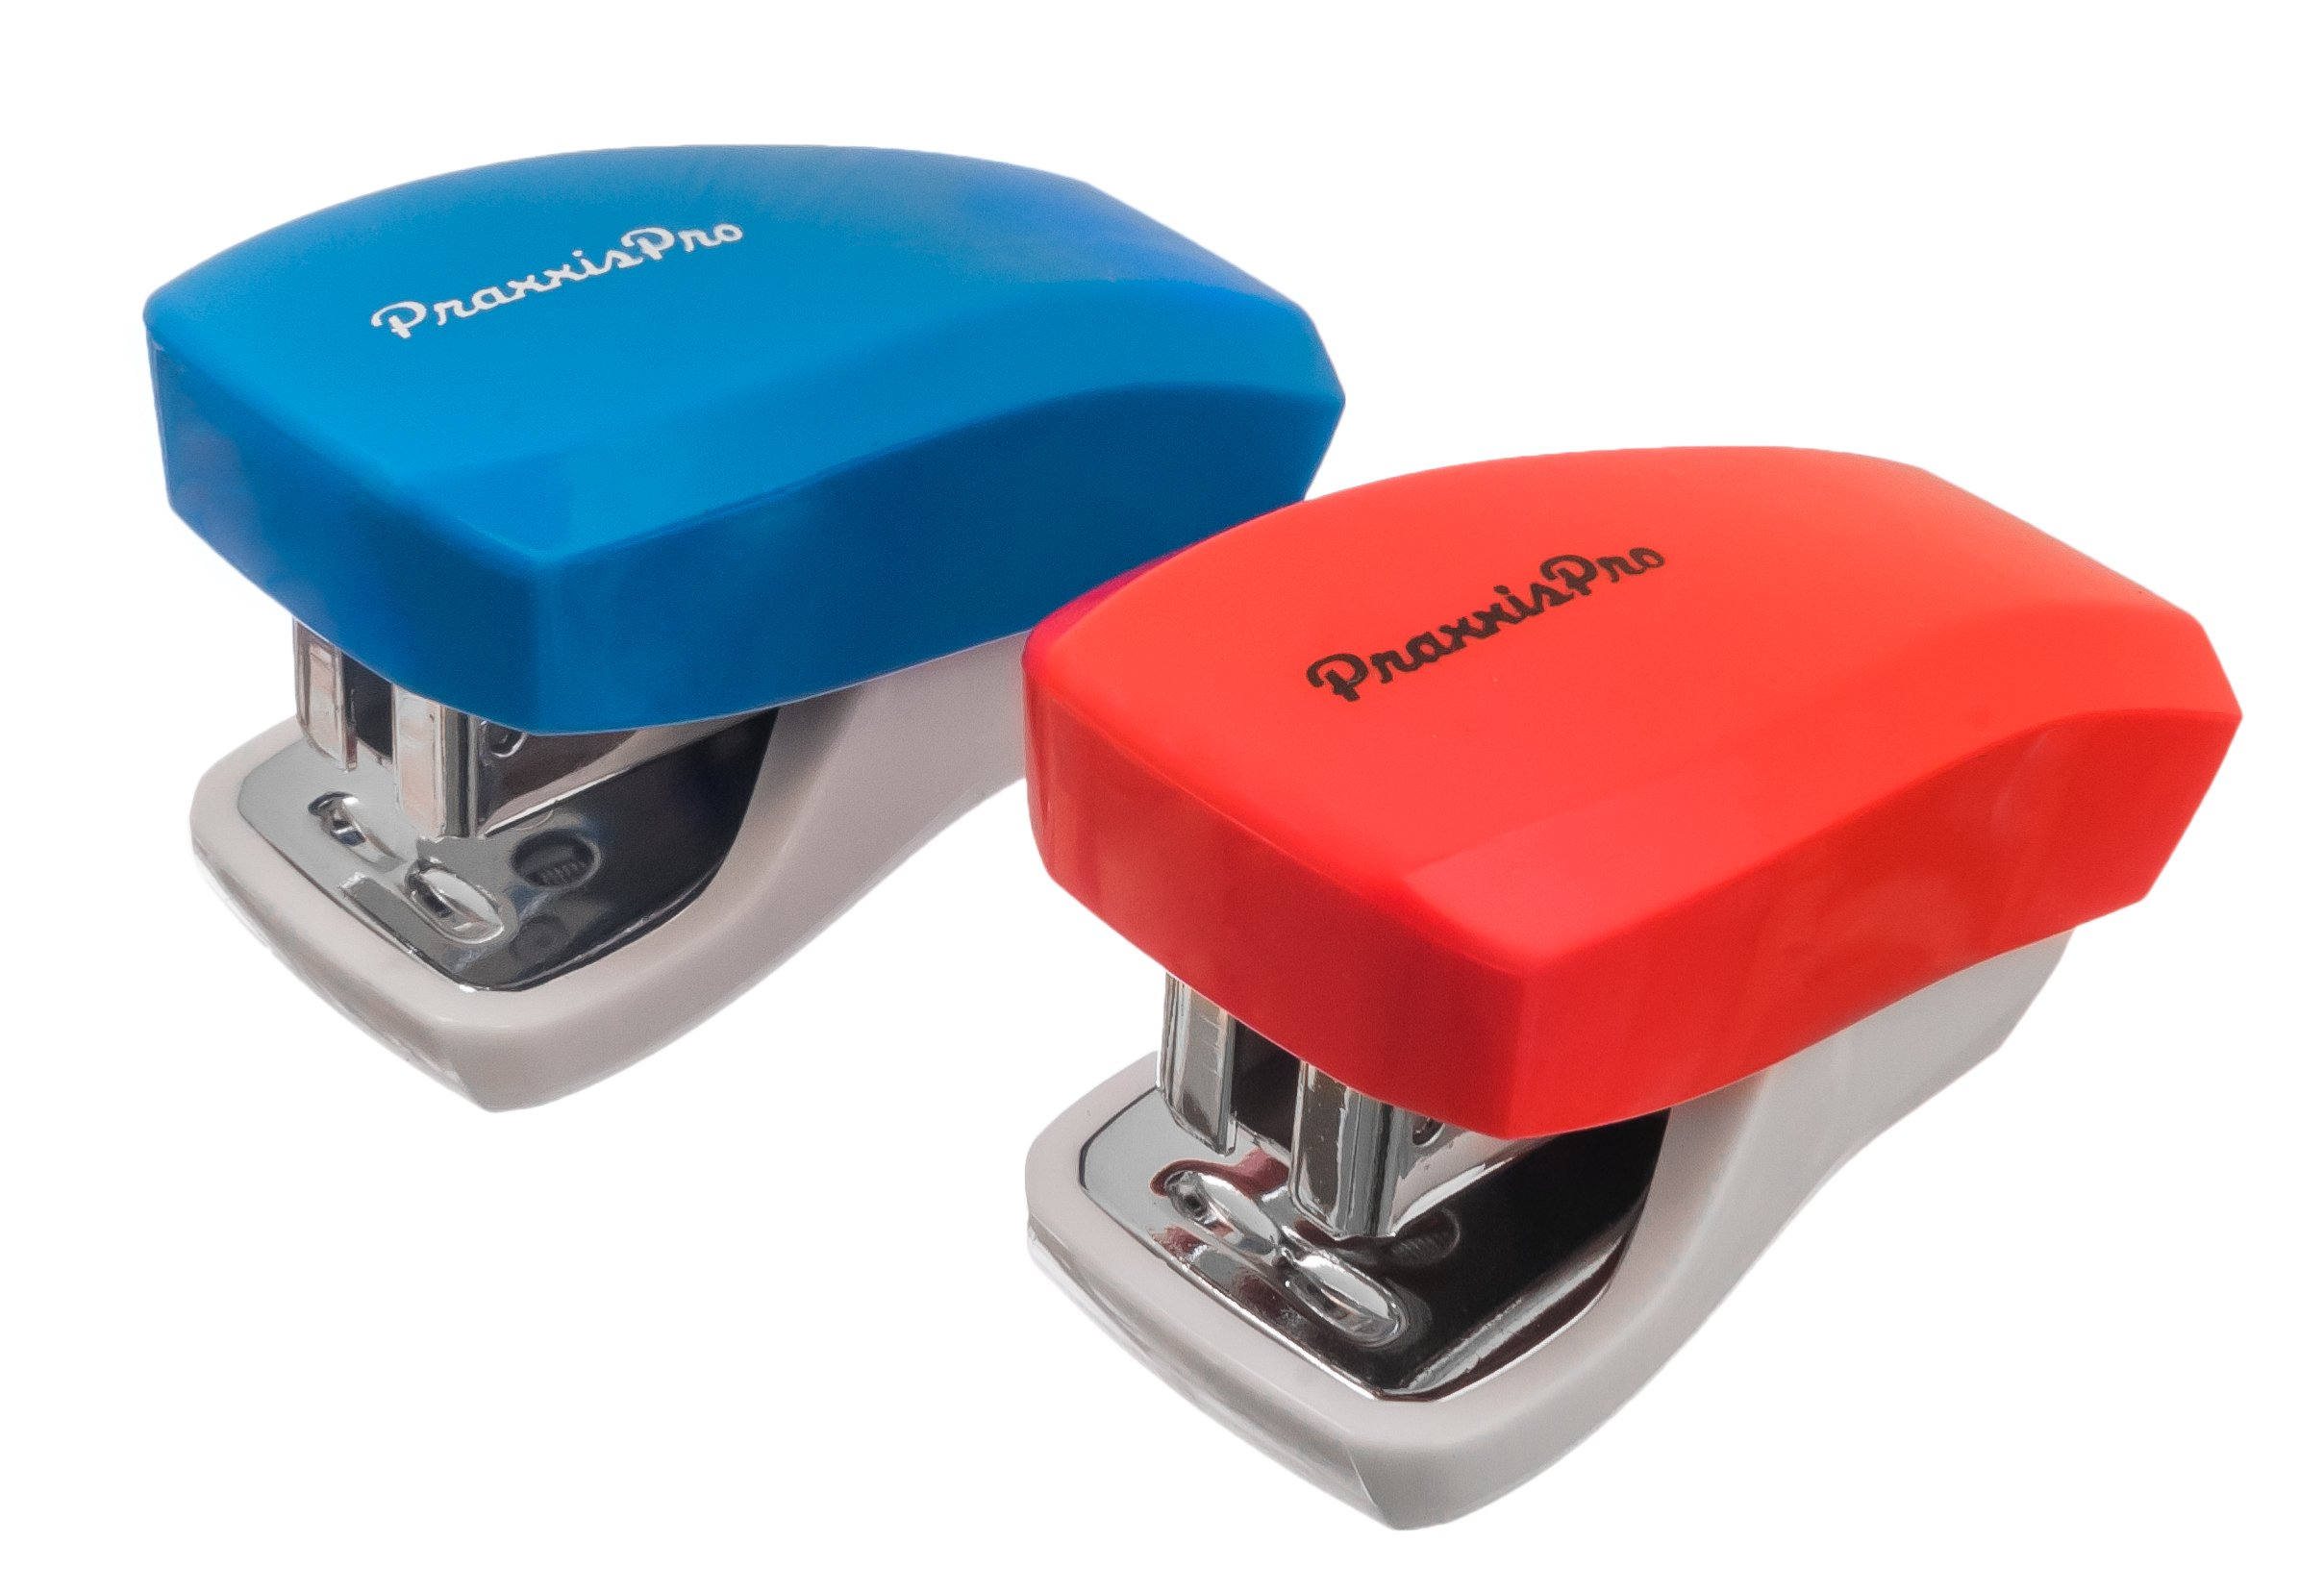 PraxxisPro, Mini Staplers, Built in Staple Remover, Staples 2 to 18 Sheets. (Blue, Red)